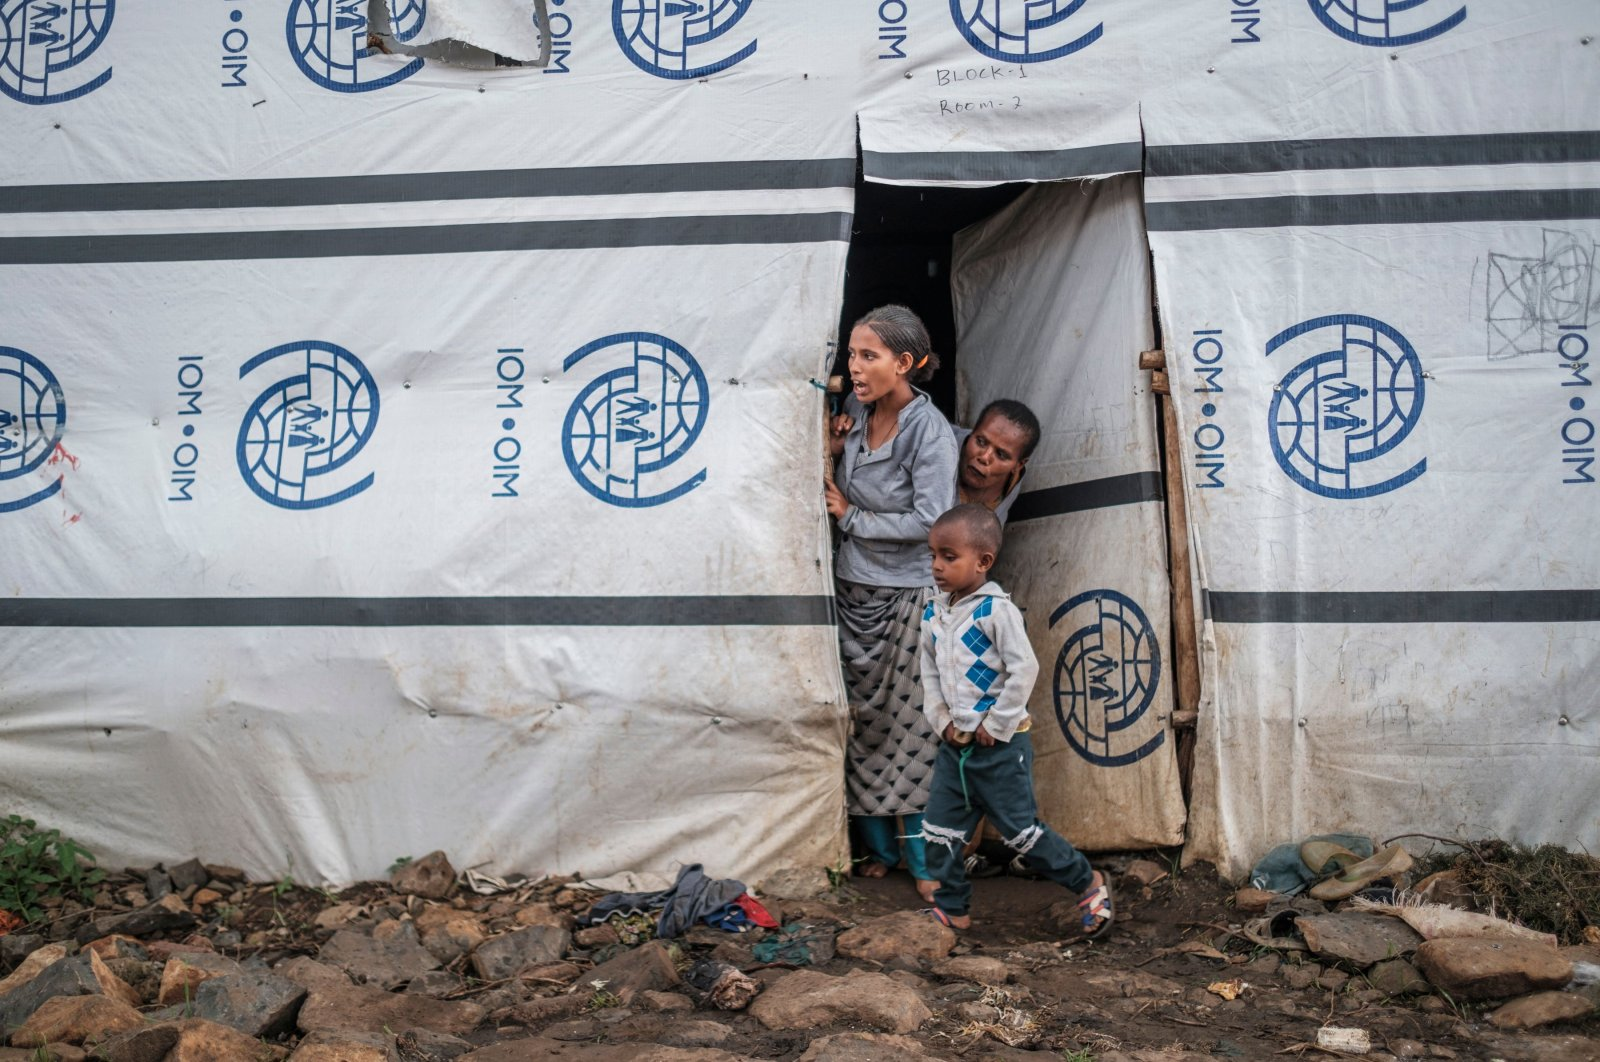 Internally displaced people stand at the door of a shelter at a camp in Azezo, Ethiopia, July 12, 2021. (AFP Photo)